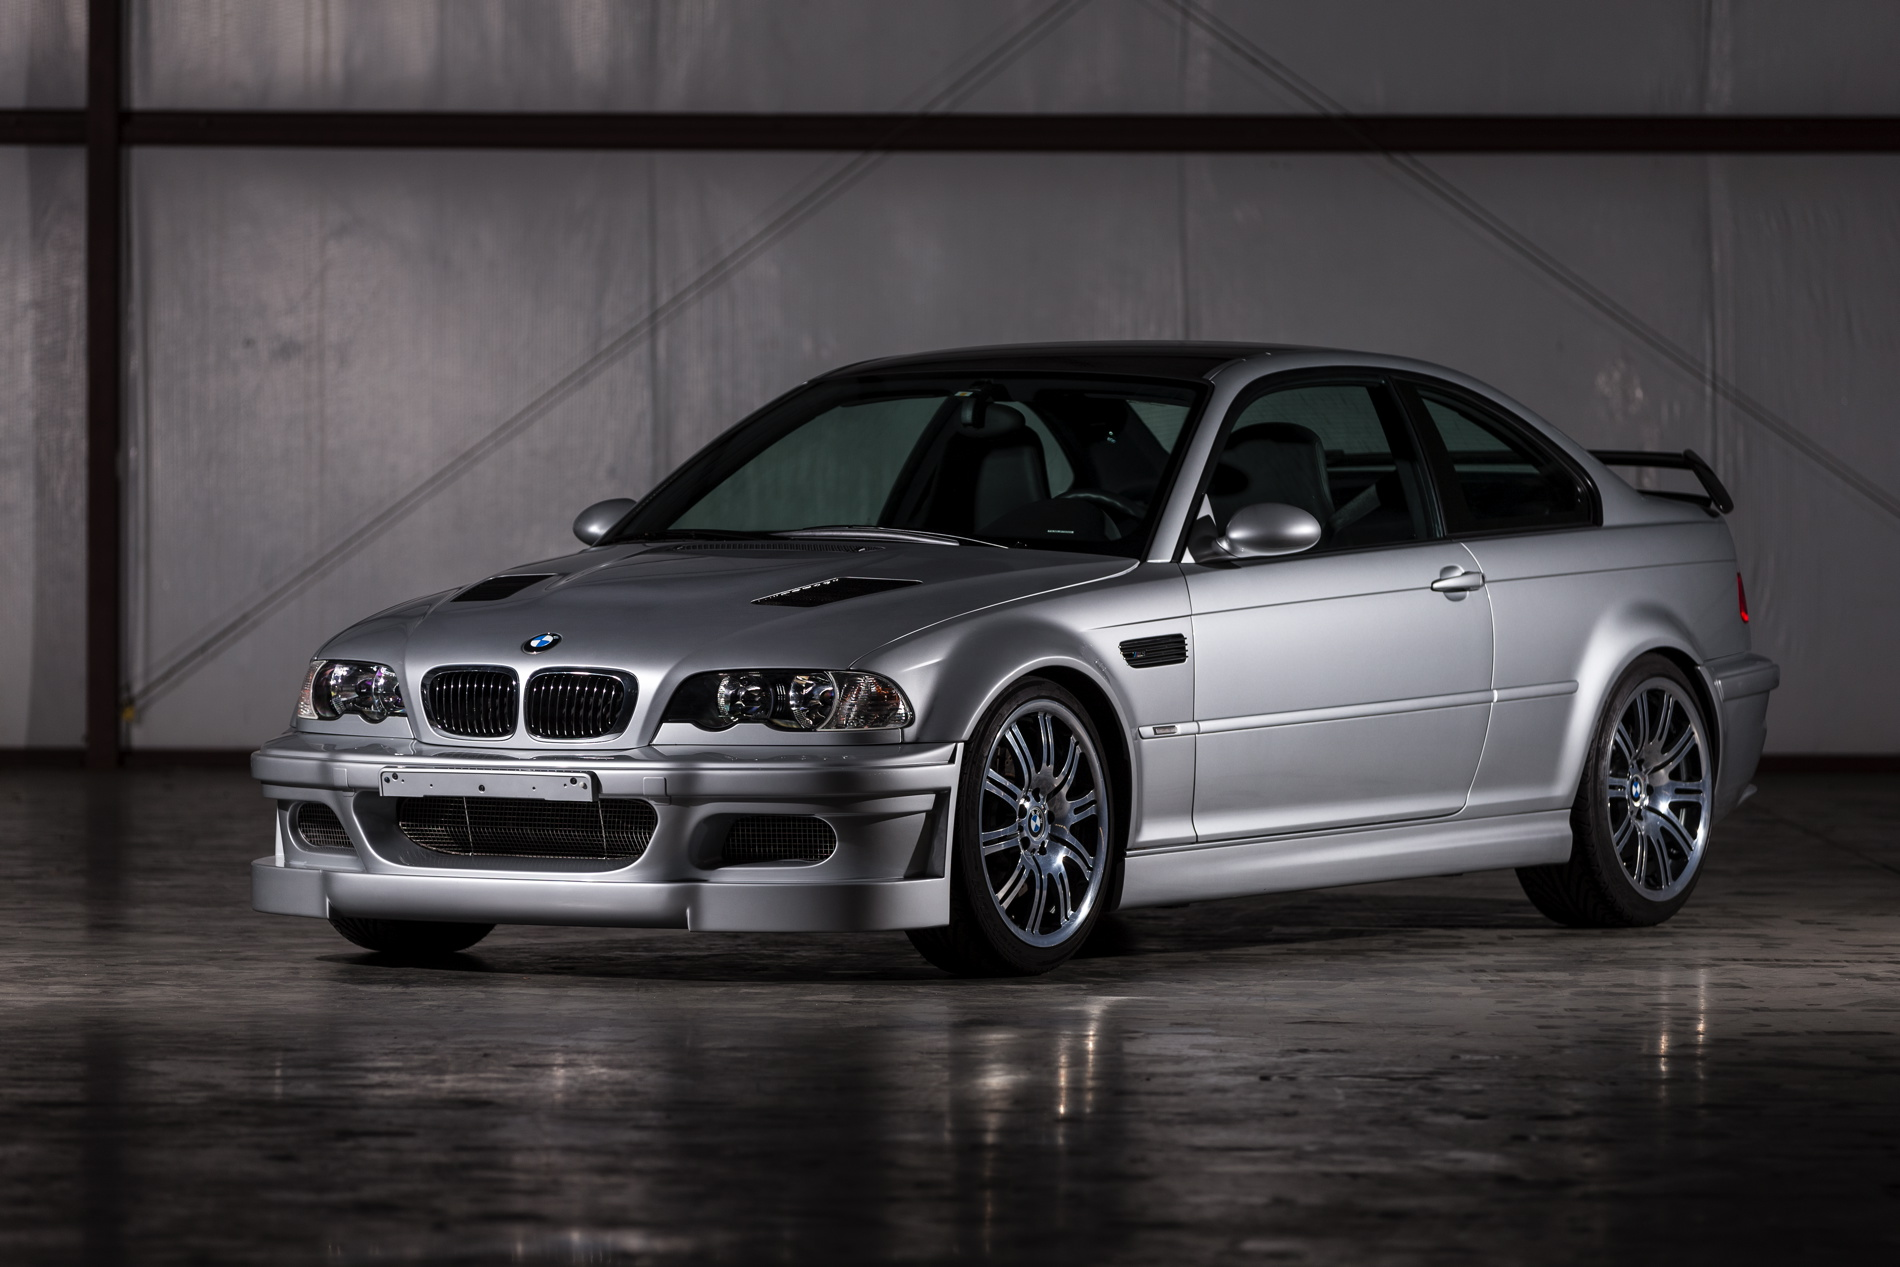 BMW E46 M3 GTR - One of the most limited production models ever produced by BMW